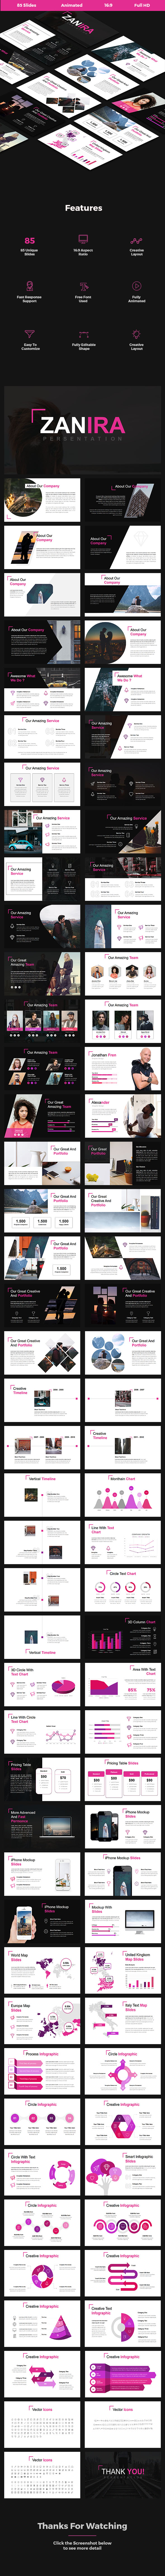 Zanira - Creative Google Slides Template - Google Slides Presentation Templates